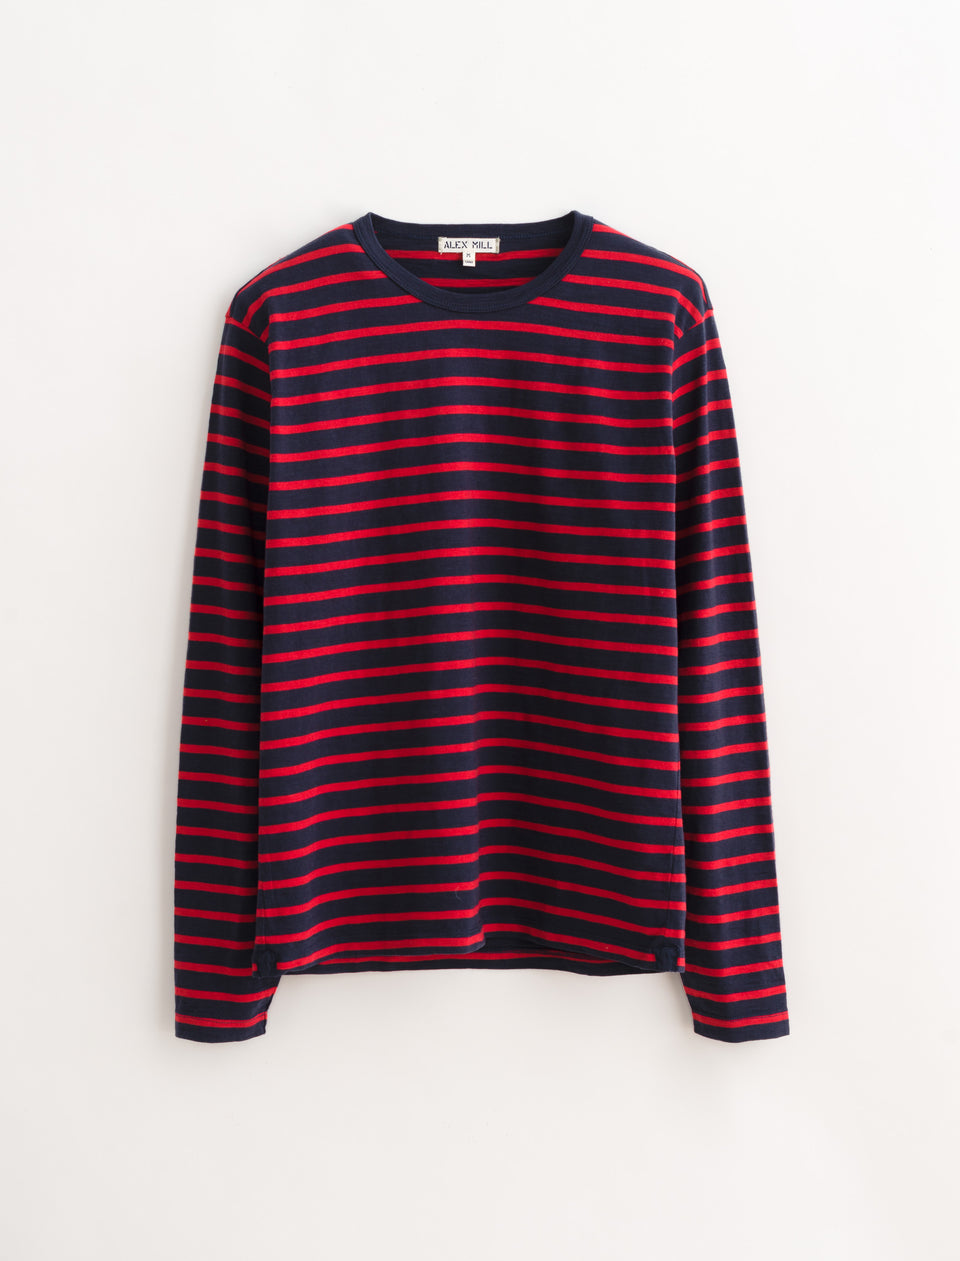 Mariner Long-Sleeve T-Shirt